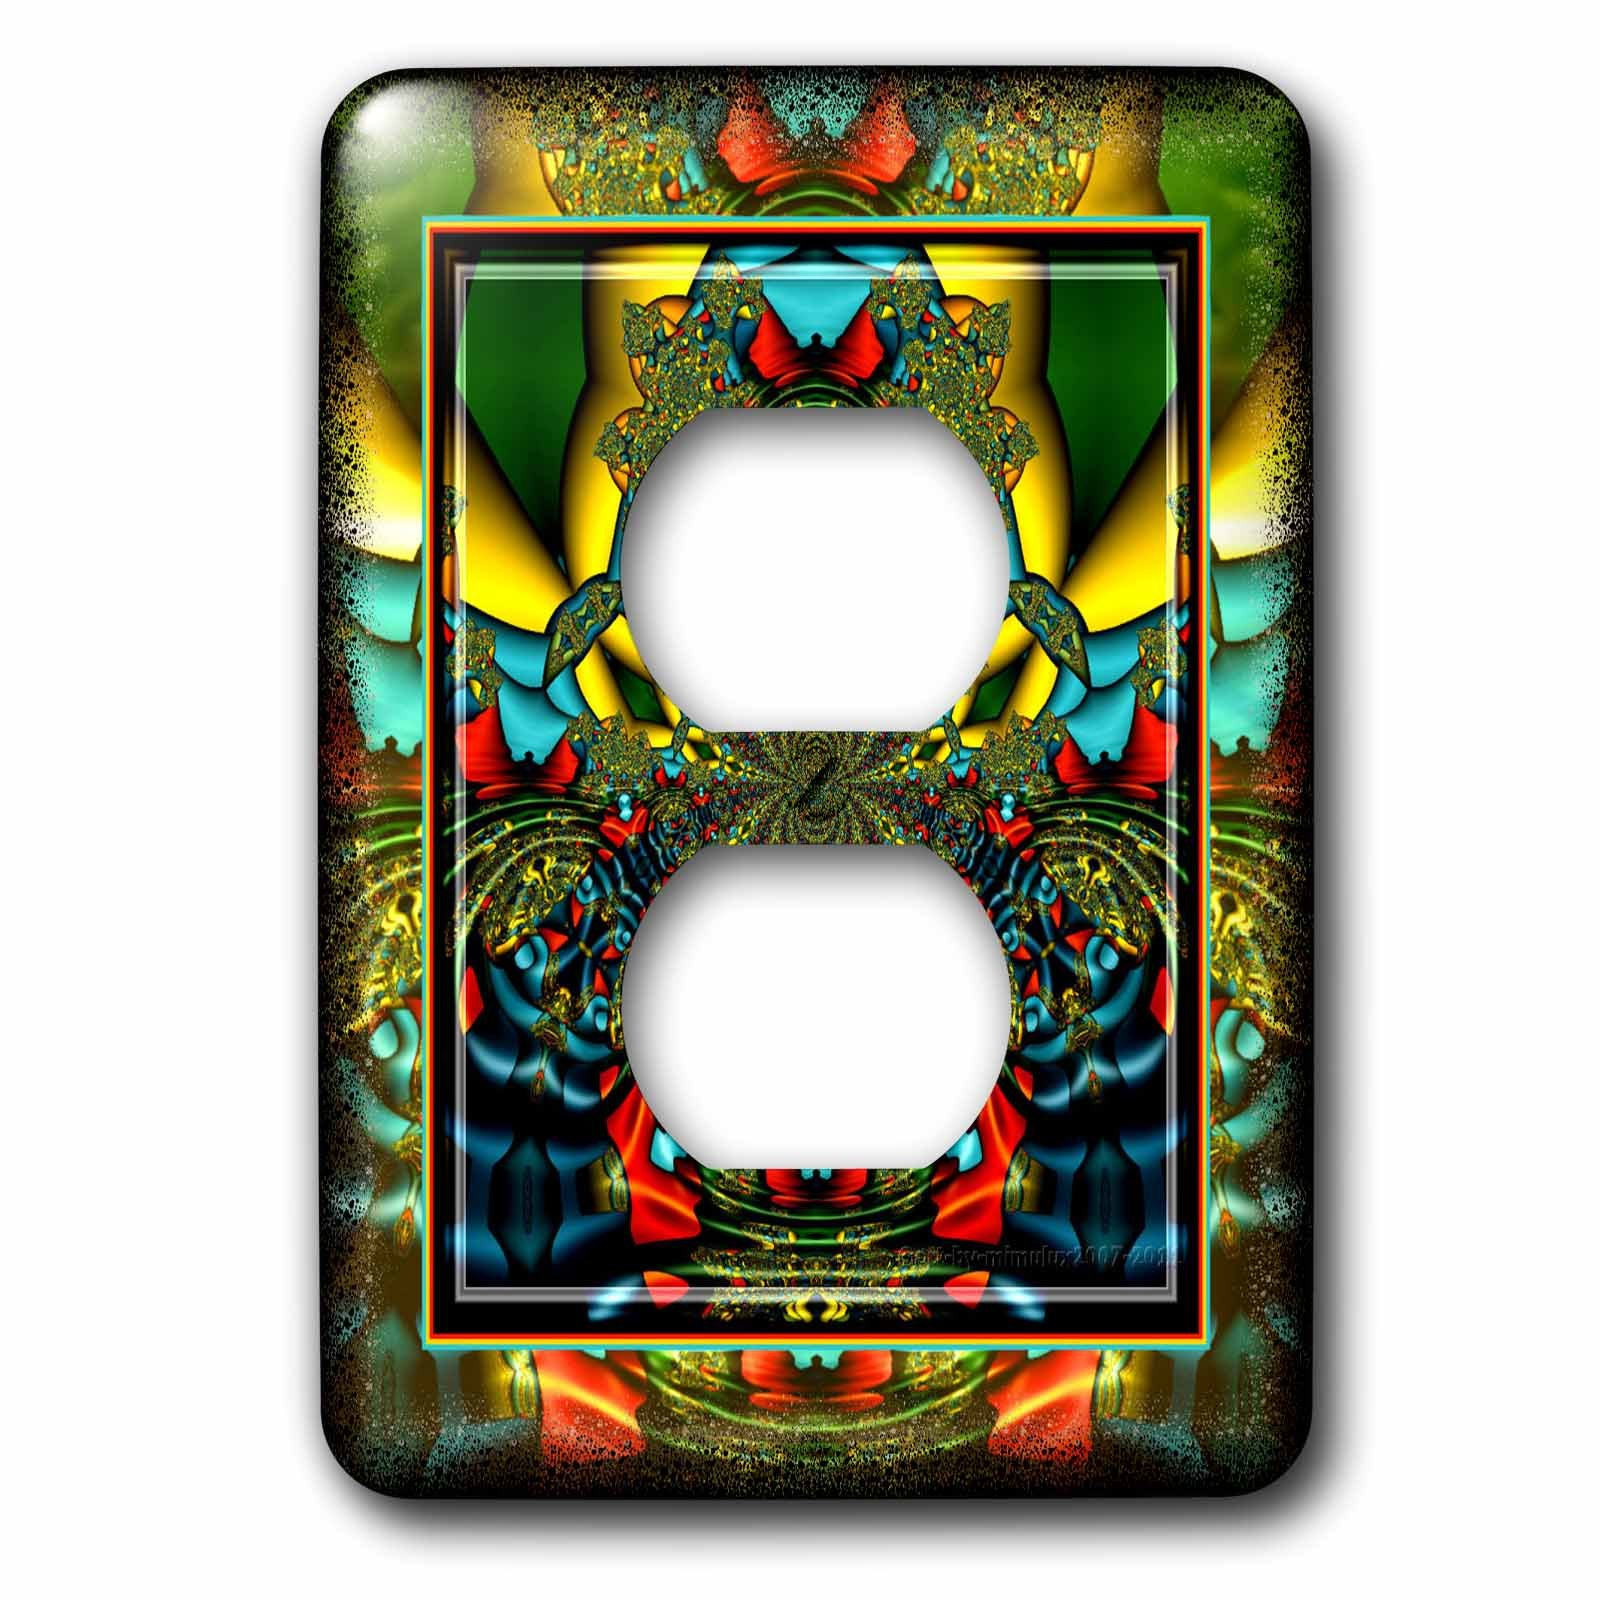 3dRose lsp_24841_6 Psychedellica 2 Hippie Flowerpower Retro Fractal Psychedellic Red Yellow Blue Retro Oriental India 2 Plug Outlet Cover